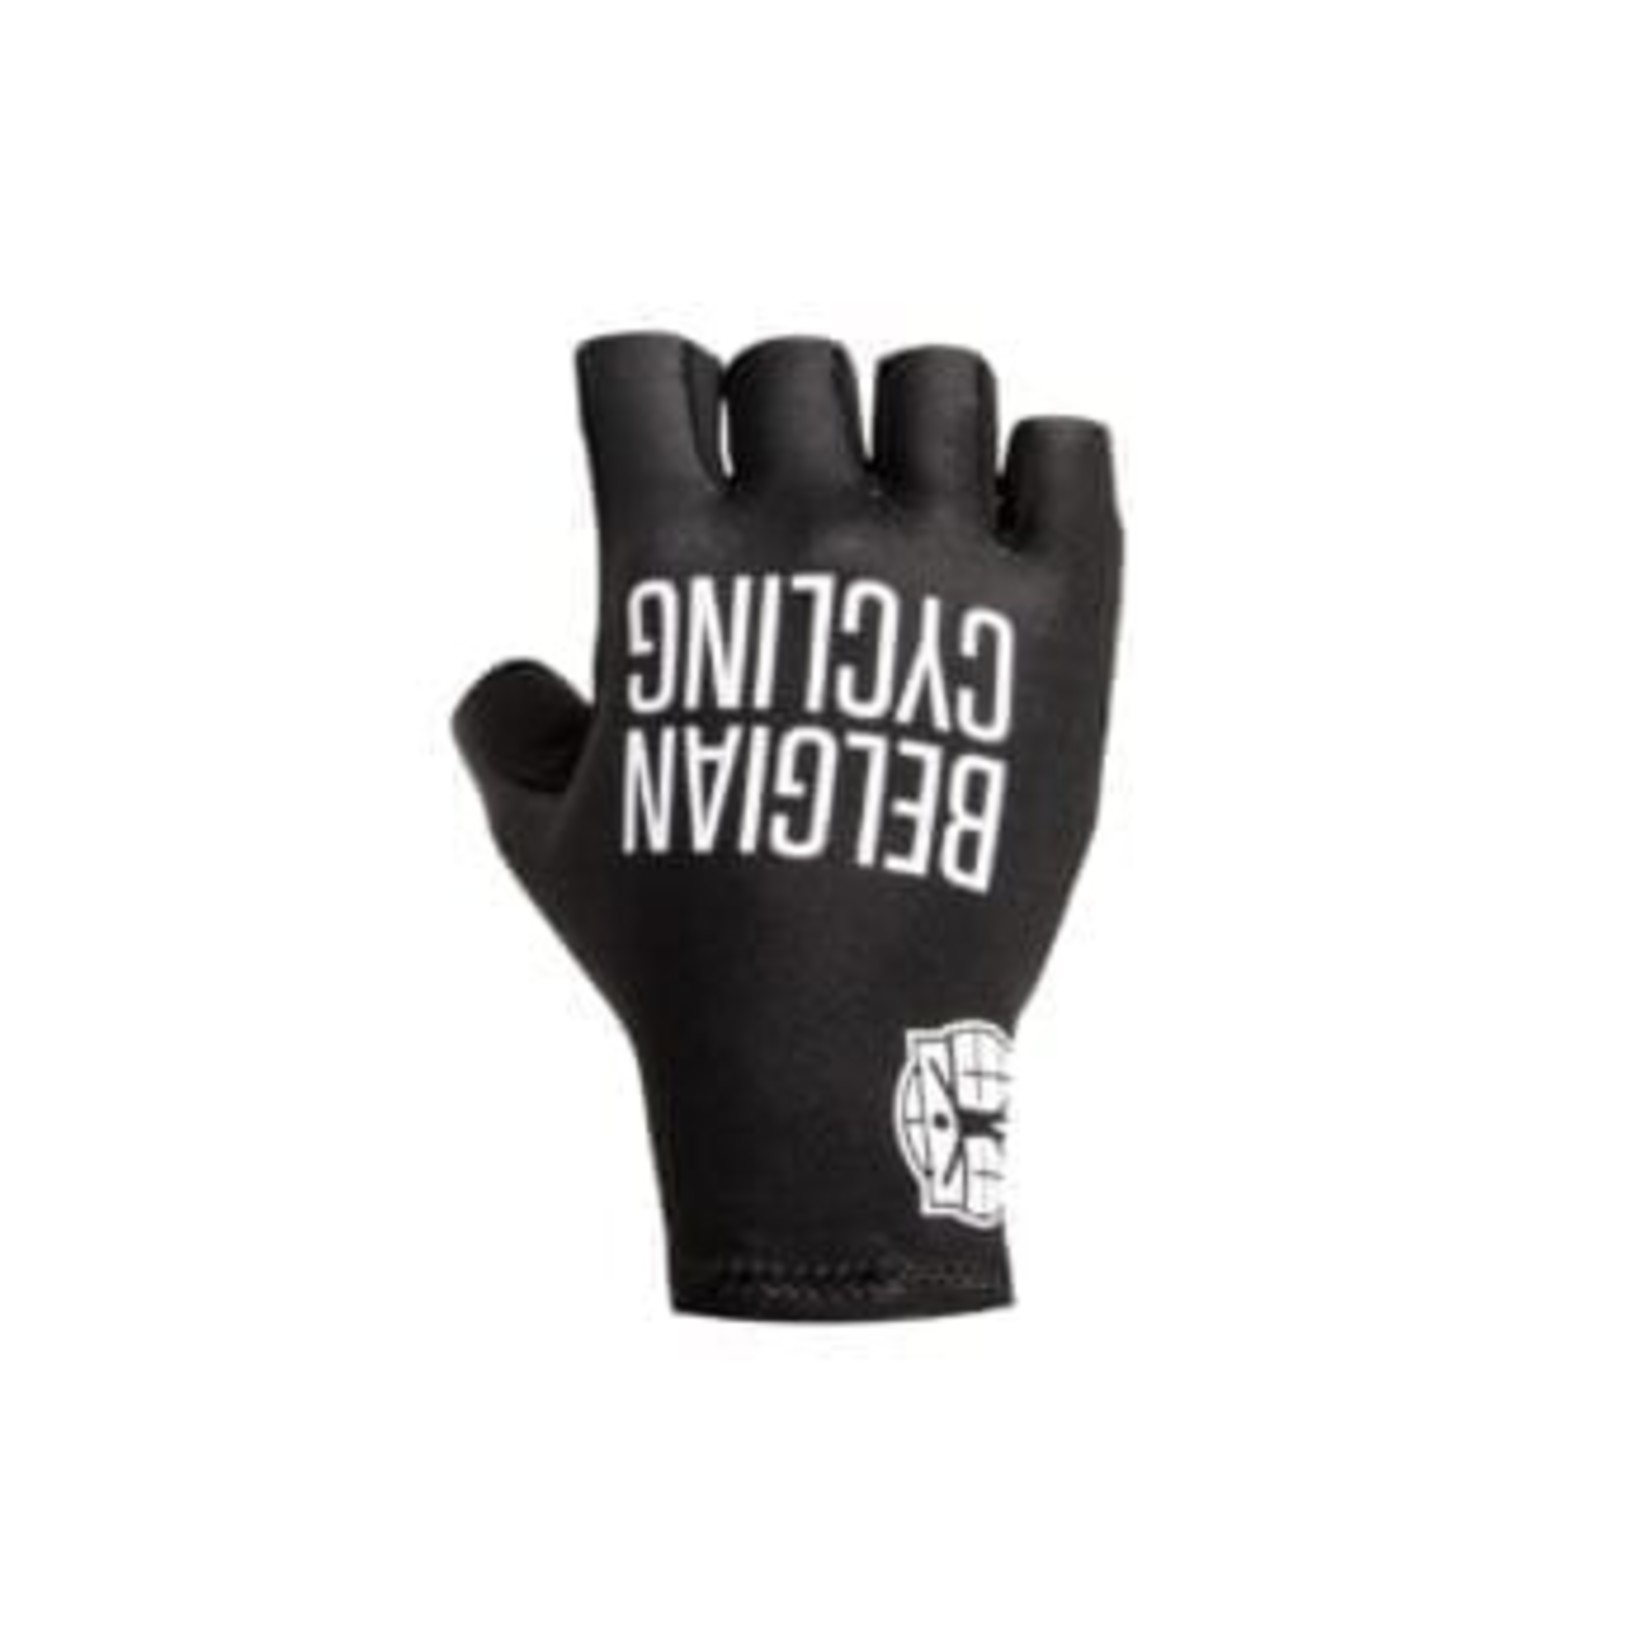 Belgian cycling team gloves